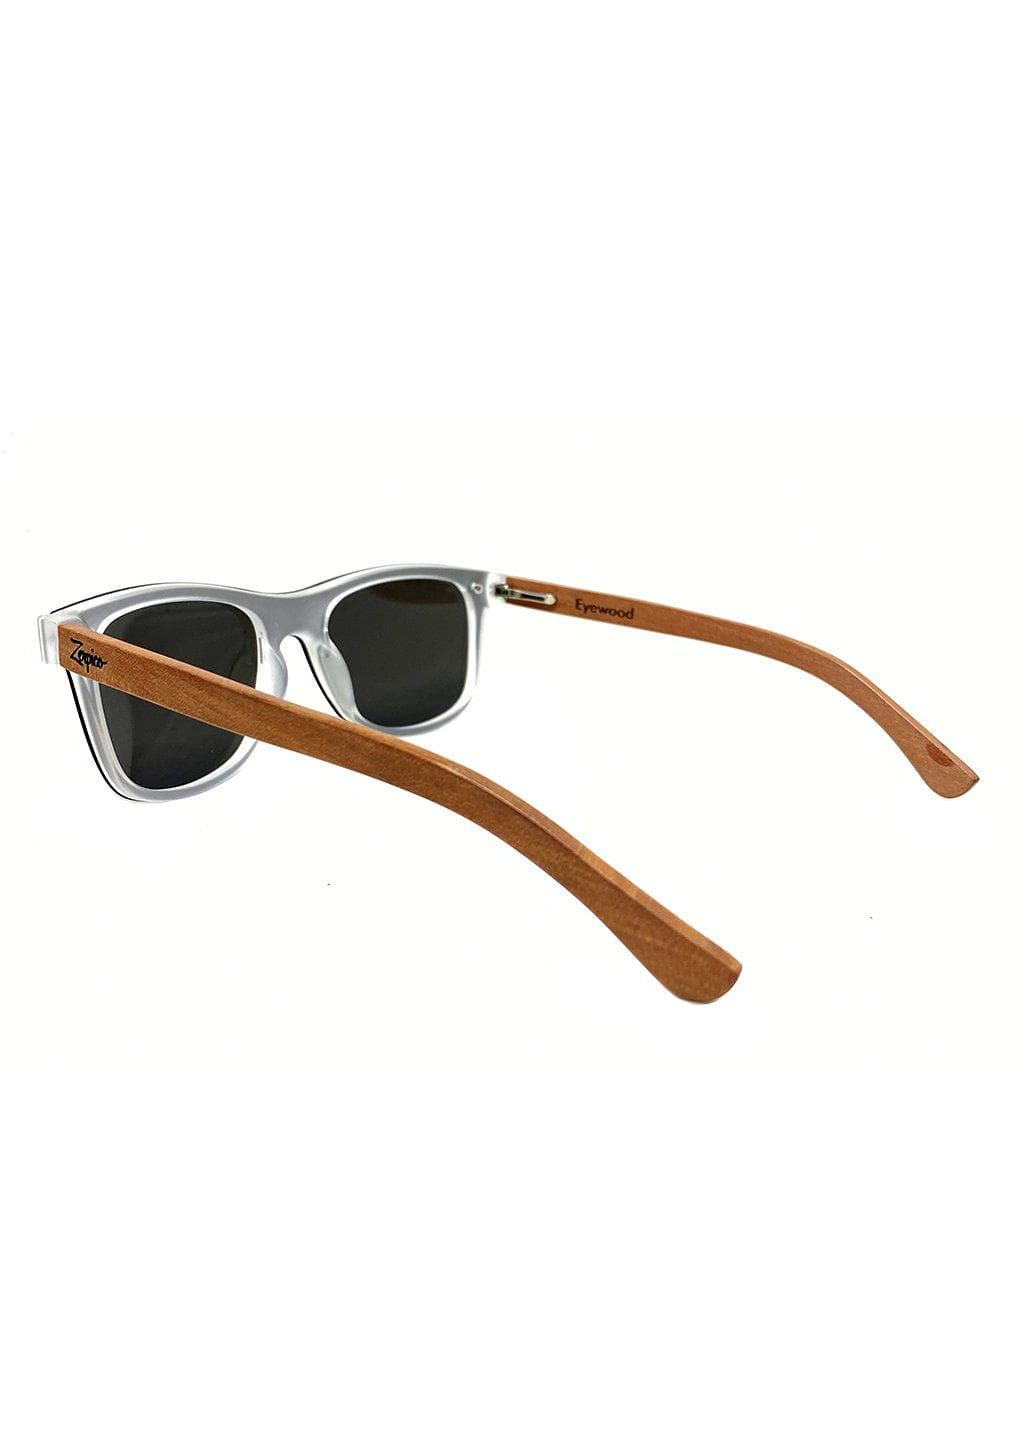 Eyewood tomorrow is our modern cool take on classic models. This is Perseus with silver mirror lenses. Nice wooden sunglasses in studio from the back.